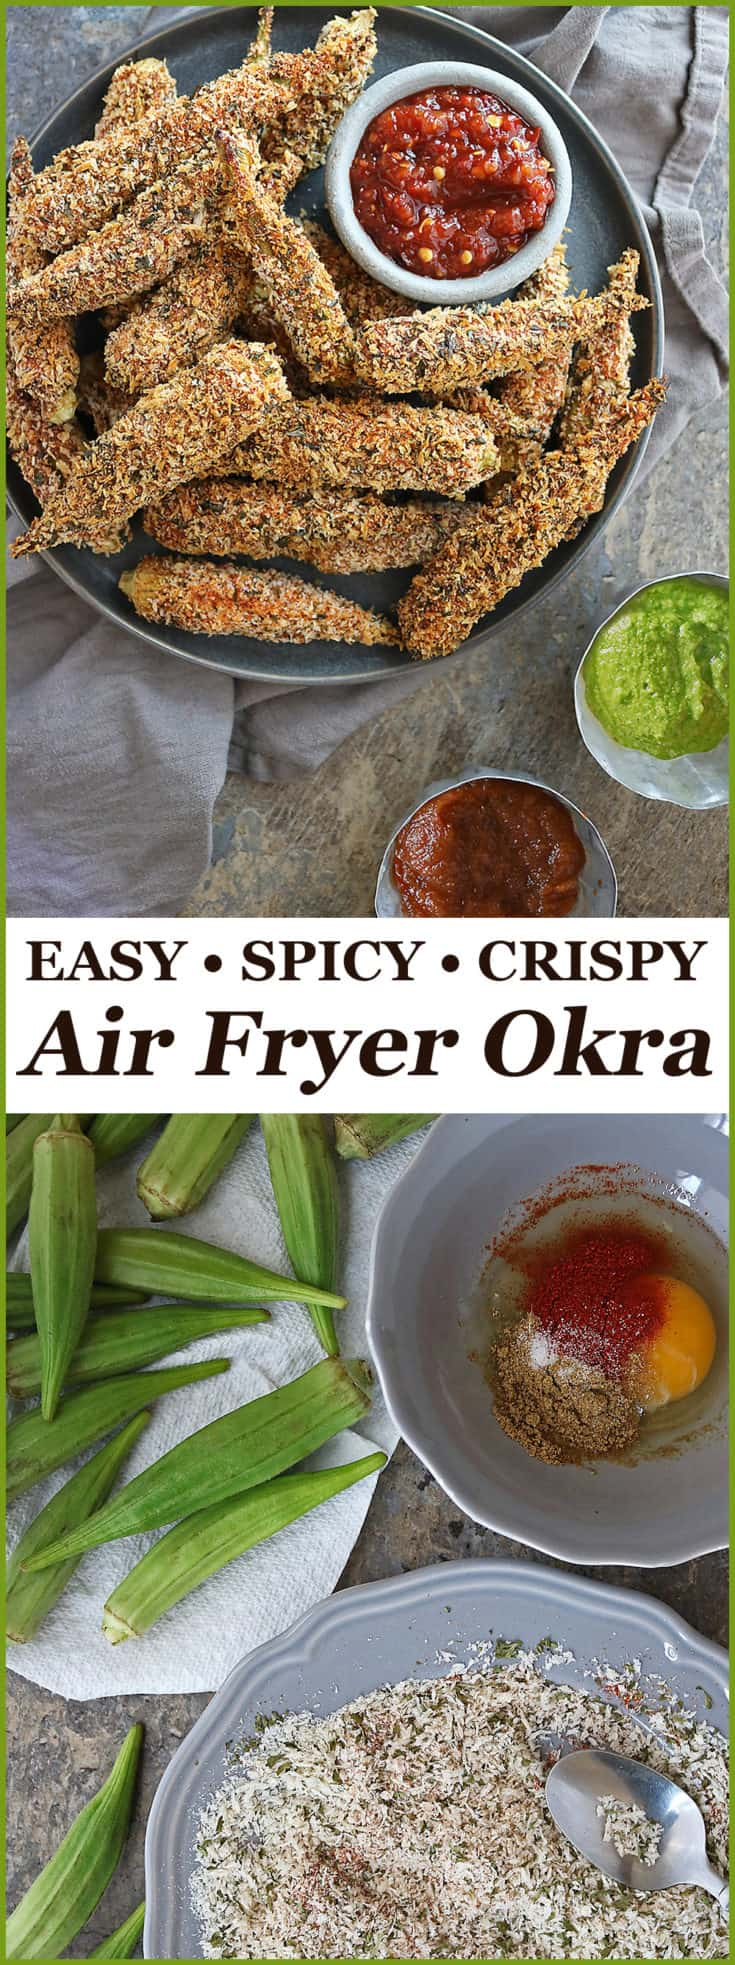 Coated with a deliciously spiced egg wash and flaked panko breading, these Crispy Spicy Air Fryer Okra are delicious to snack on or enjoy as a side at your next family meal.